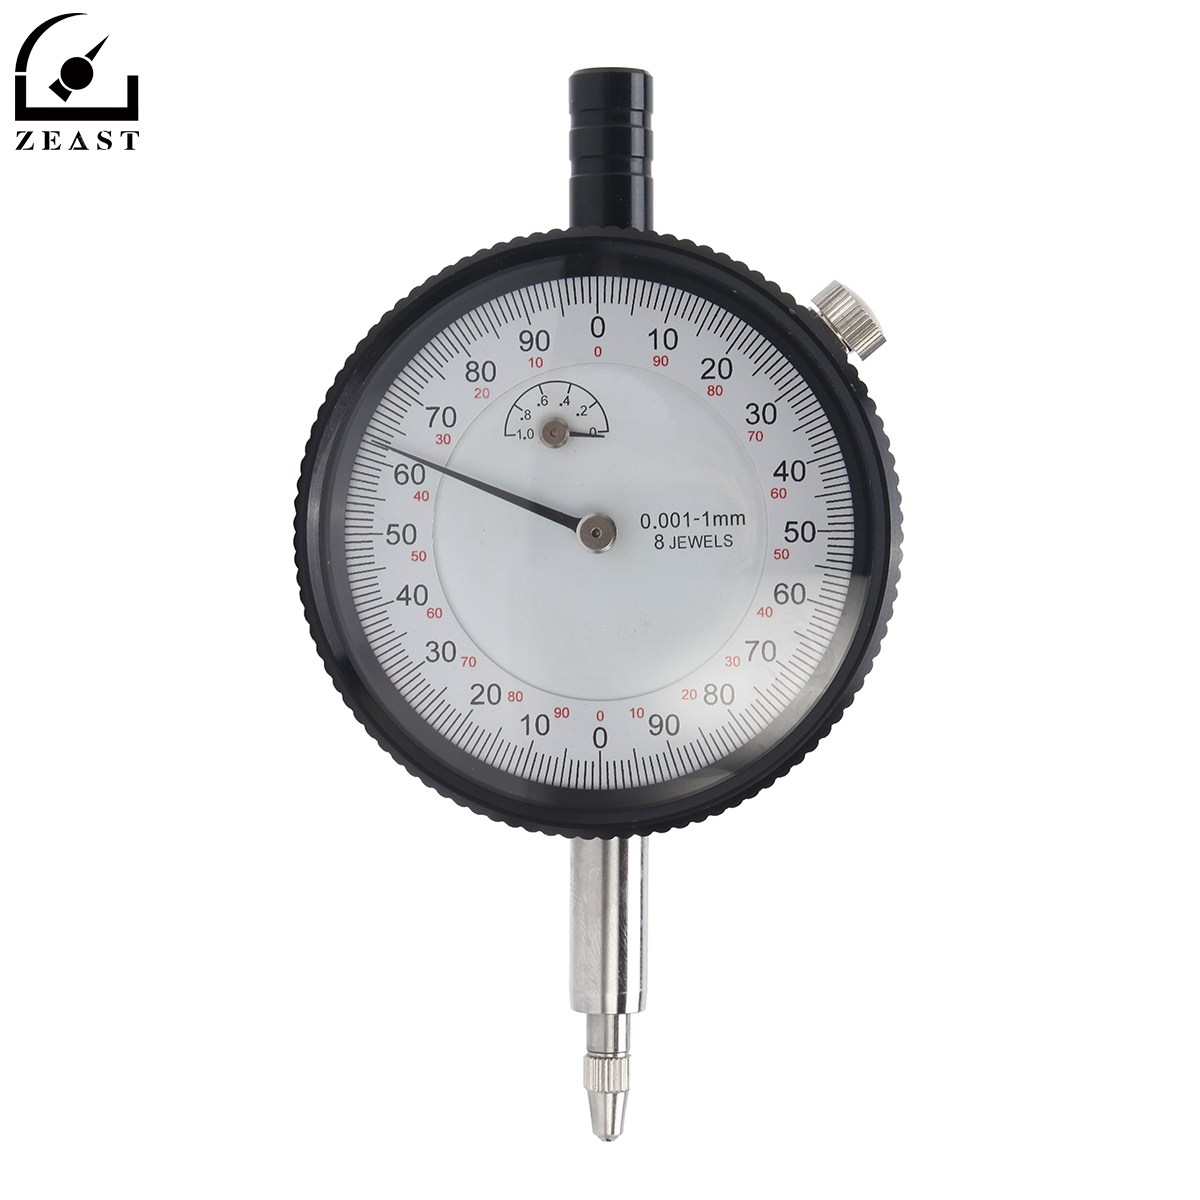 Micron Dial Gauge Test Indicator Precision 0-1mm 0.001mm Indicators Tool купить